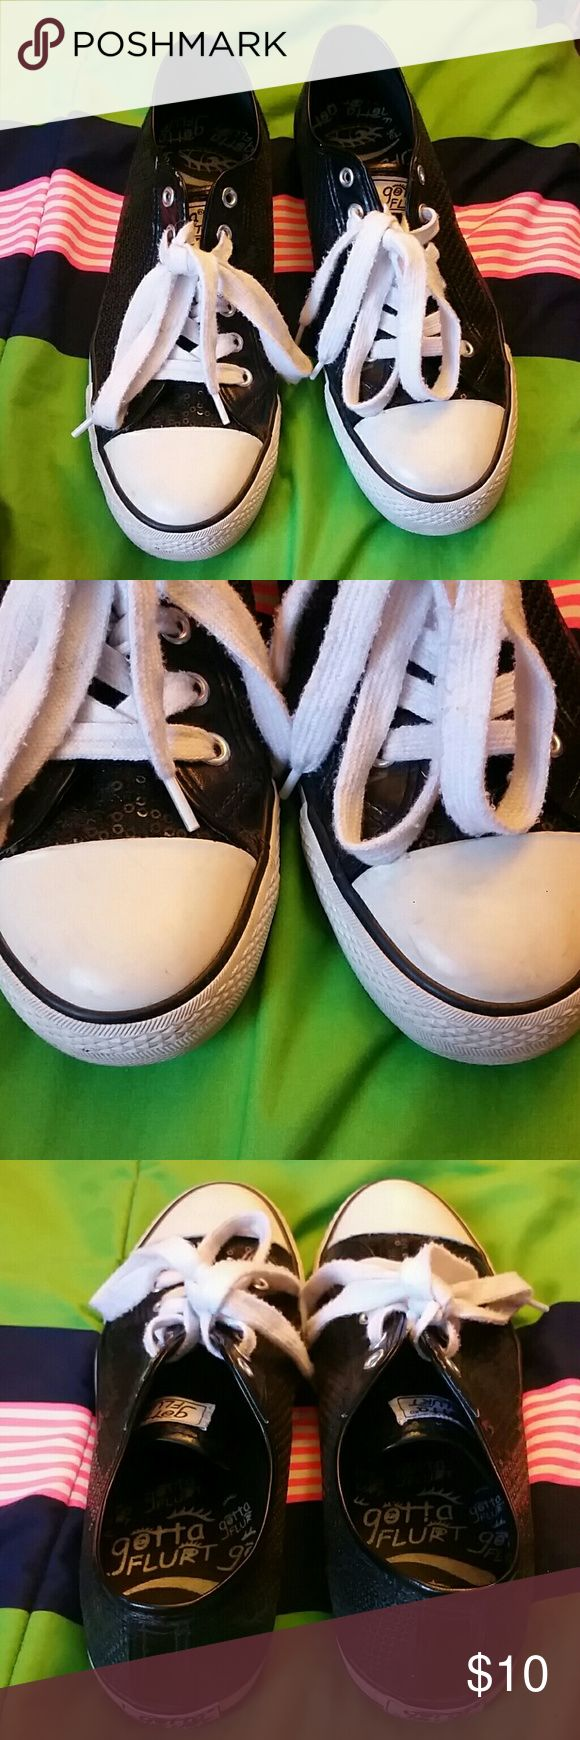 Converse style black & white sequin sneakers Gotta Flurt brand converse style lace up shoes. Black sequins on black part of shoe. Worn a few times but still great condition. See sizing on inside of tongue (see pic). Shoes are more for narrow feet. Gotta Flurt Shoes Sneakers